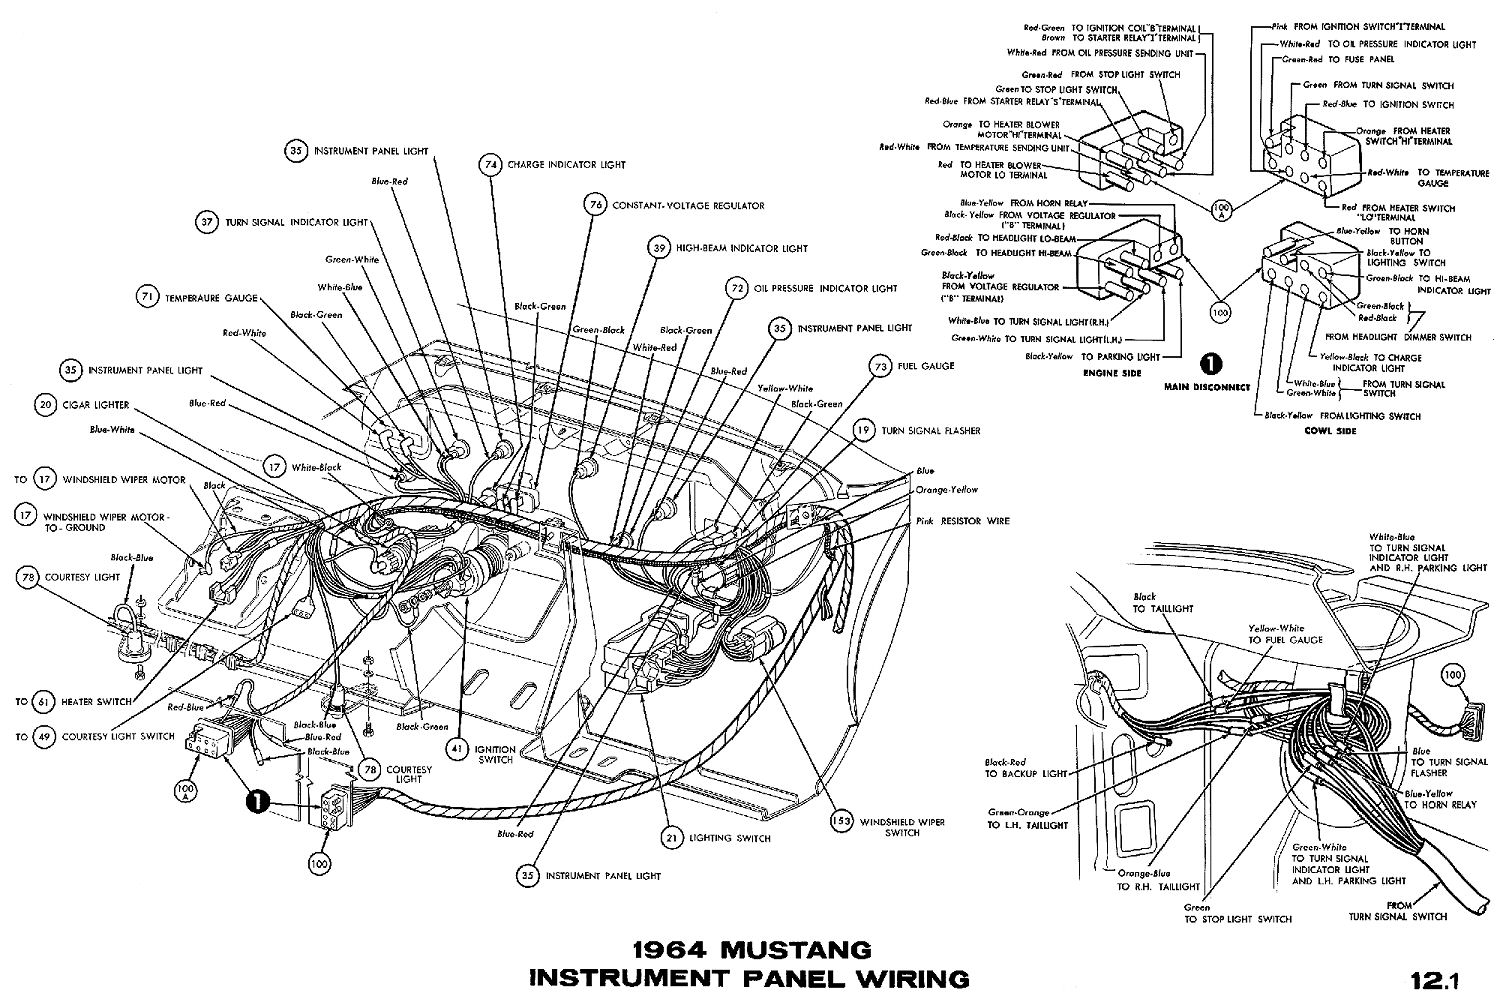 1966 mustang interior lights wiring harness diagram data wiring rh mikeadkinsguitar com